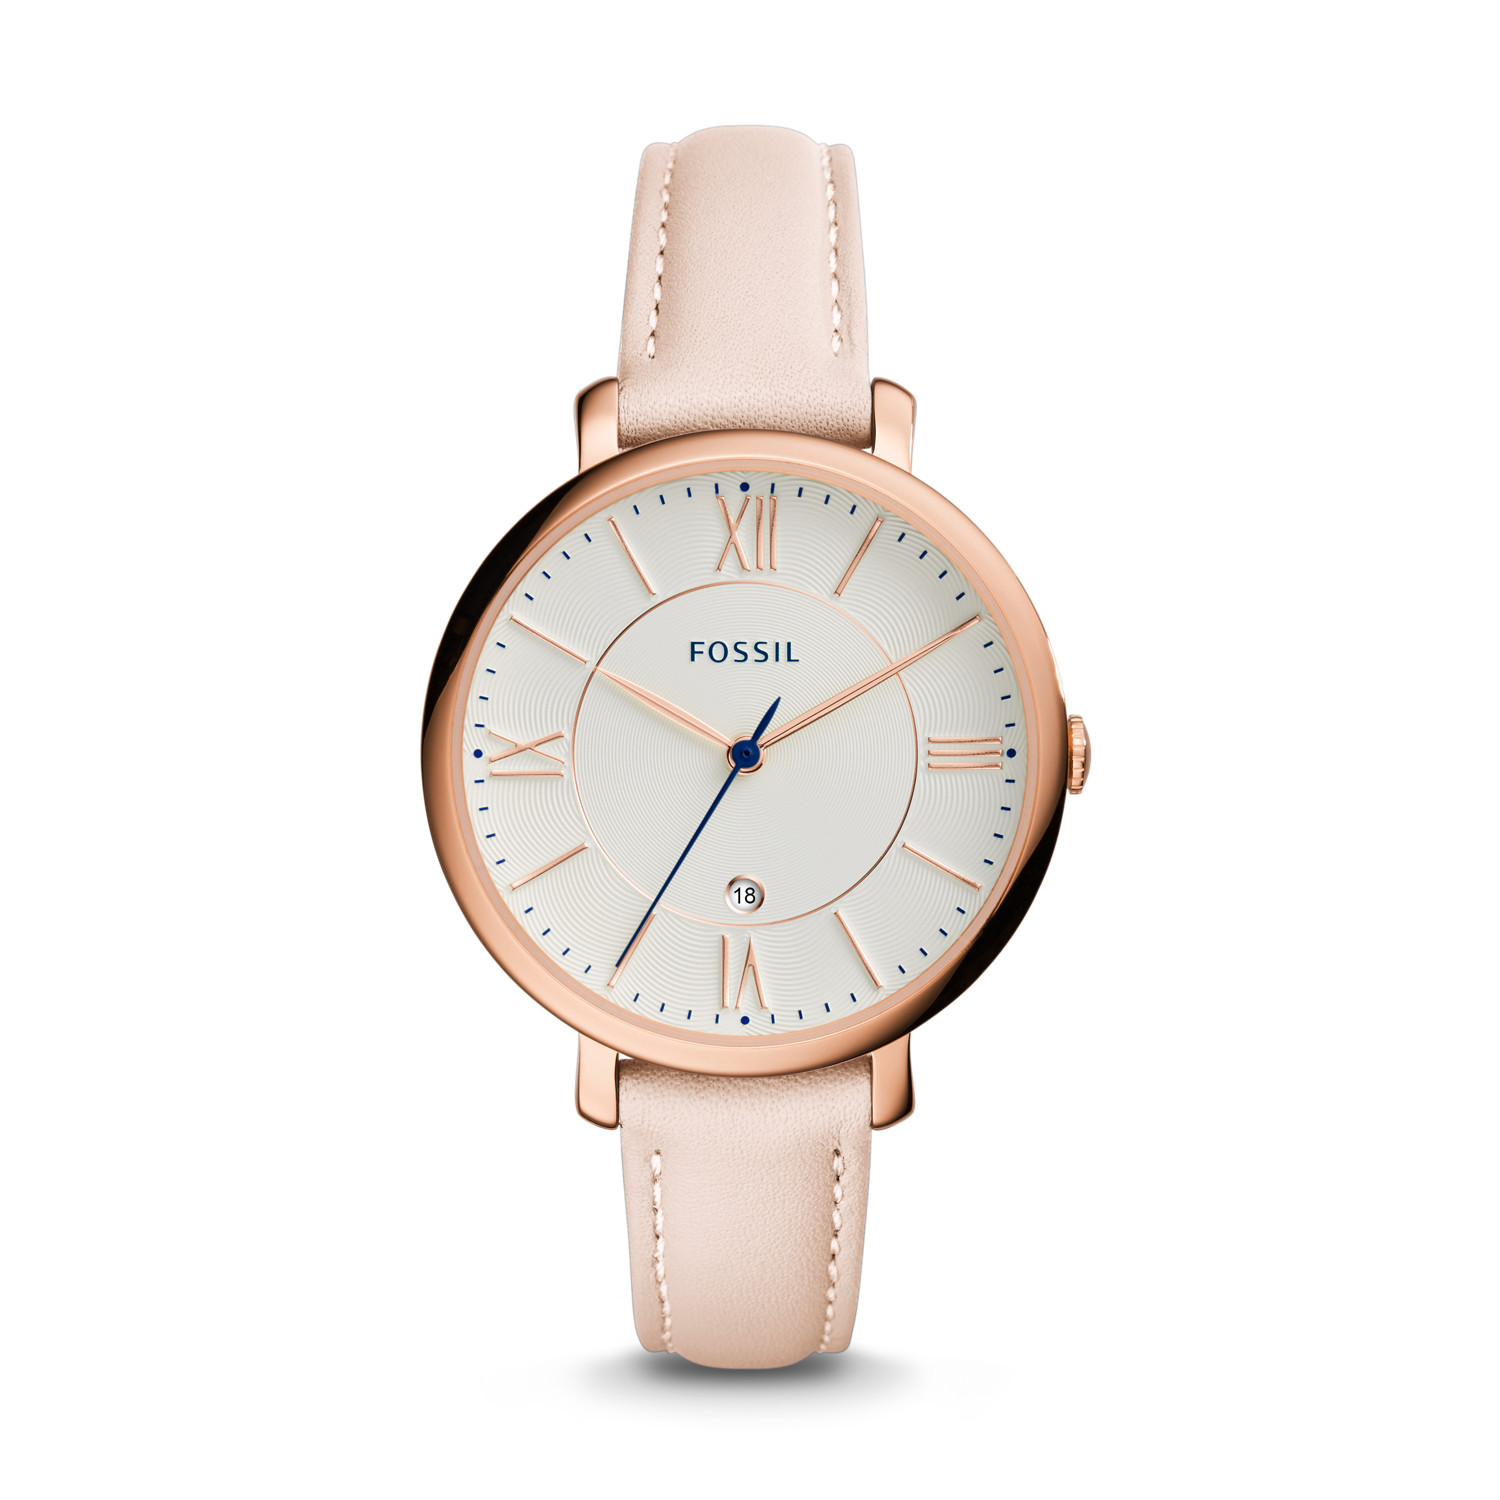 fossil watches jacqueline watch